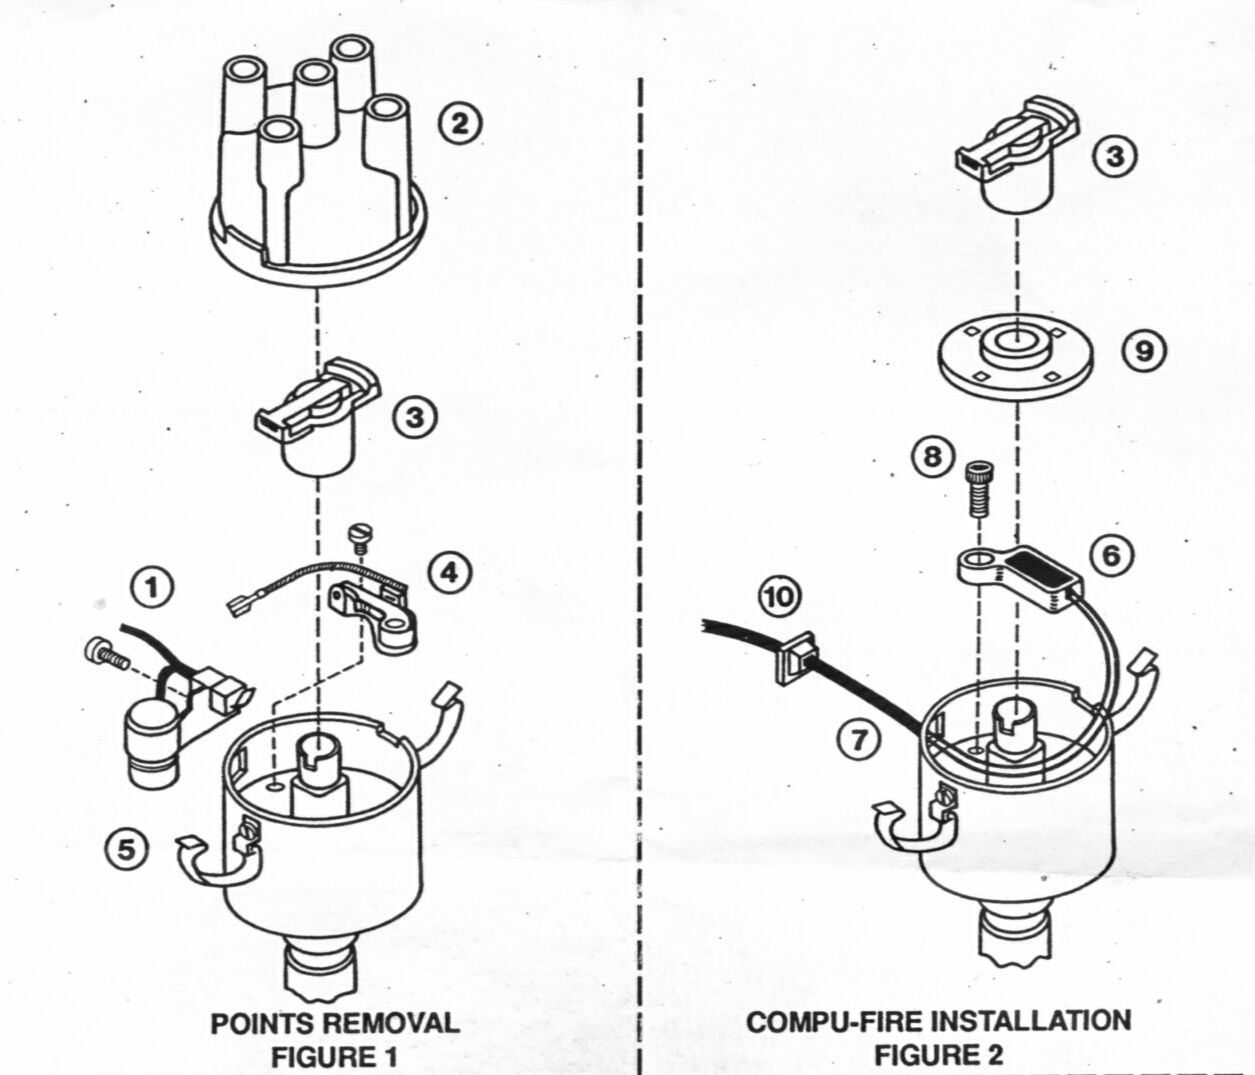 Vw Engine Diagram Wires Cap Wiring Library Volkswagen Bug Compufire Electronic Ignition